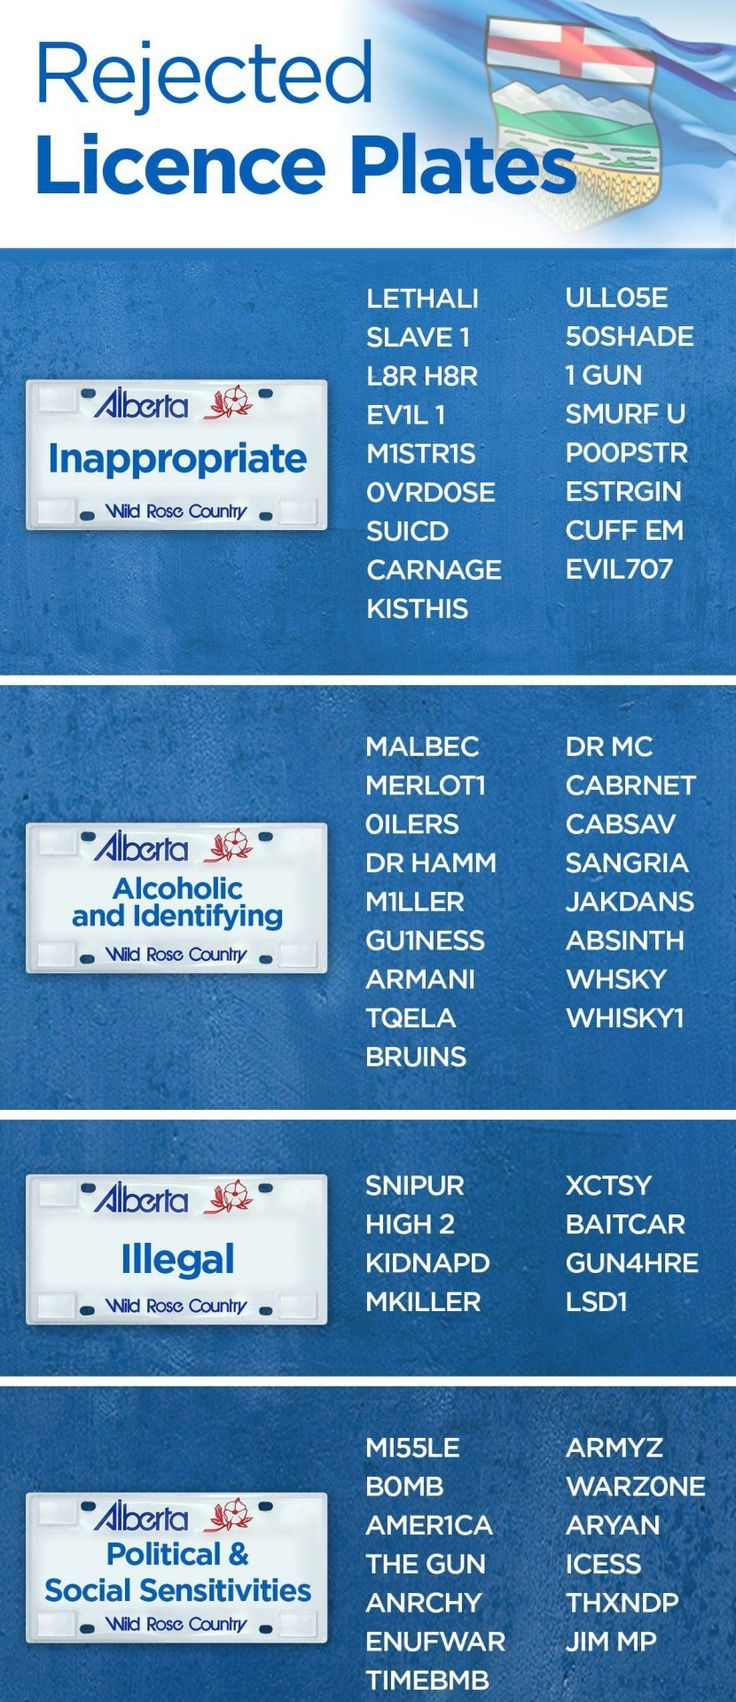 WARNING: Some of the following rejected license plates may be offensive to some. Full Story: http://globalnews.ca/news/3452256/these-are-the-licence-plates-the-alberta-government-doesnt-want-you-to-have/